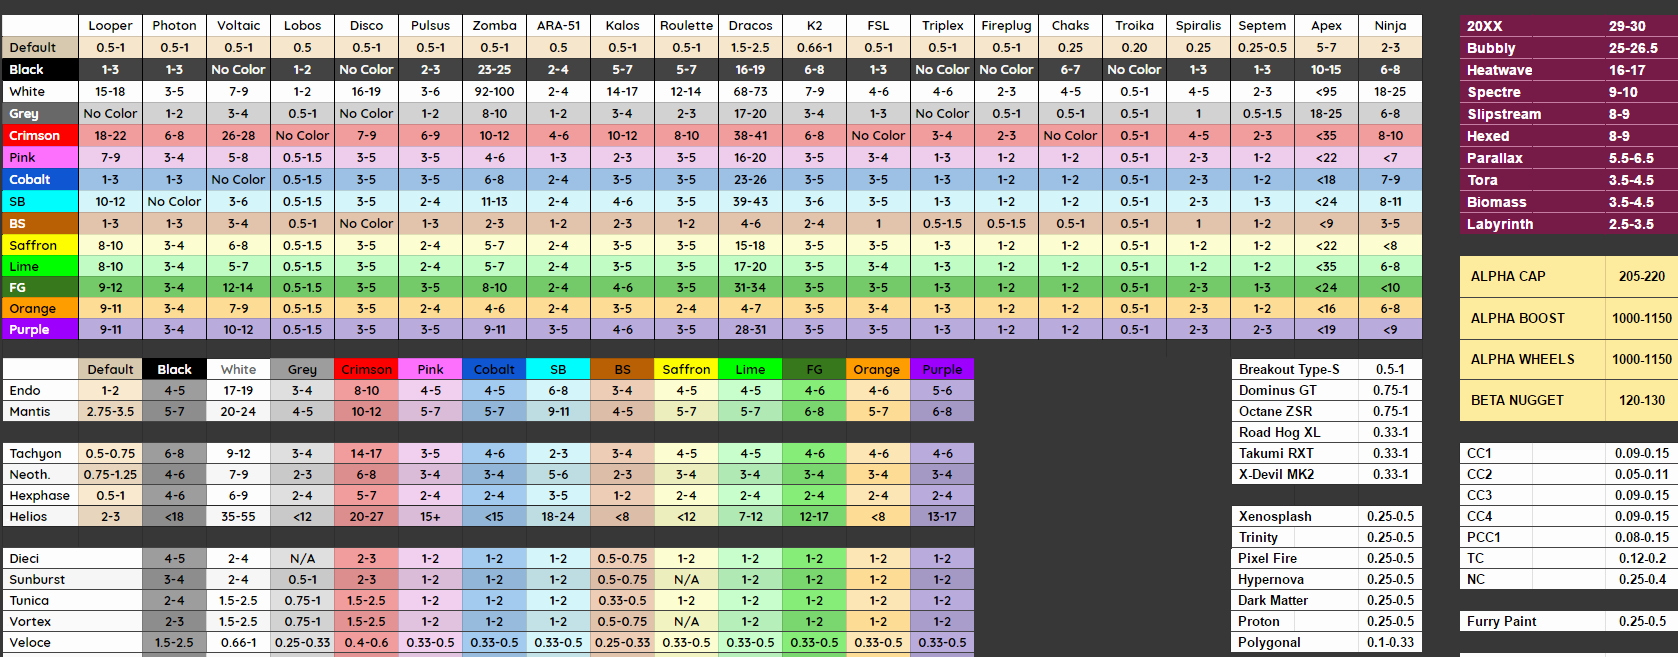 Rocket League Spreadsheet Prices Xbox With Sheet Xbox Rocket Leagueces Spreadsheet Maxresdefault Newce Index